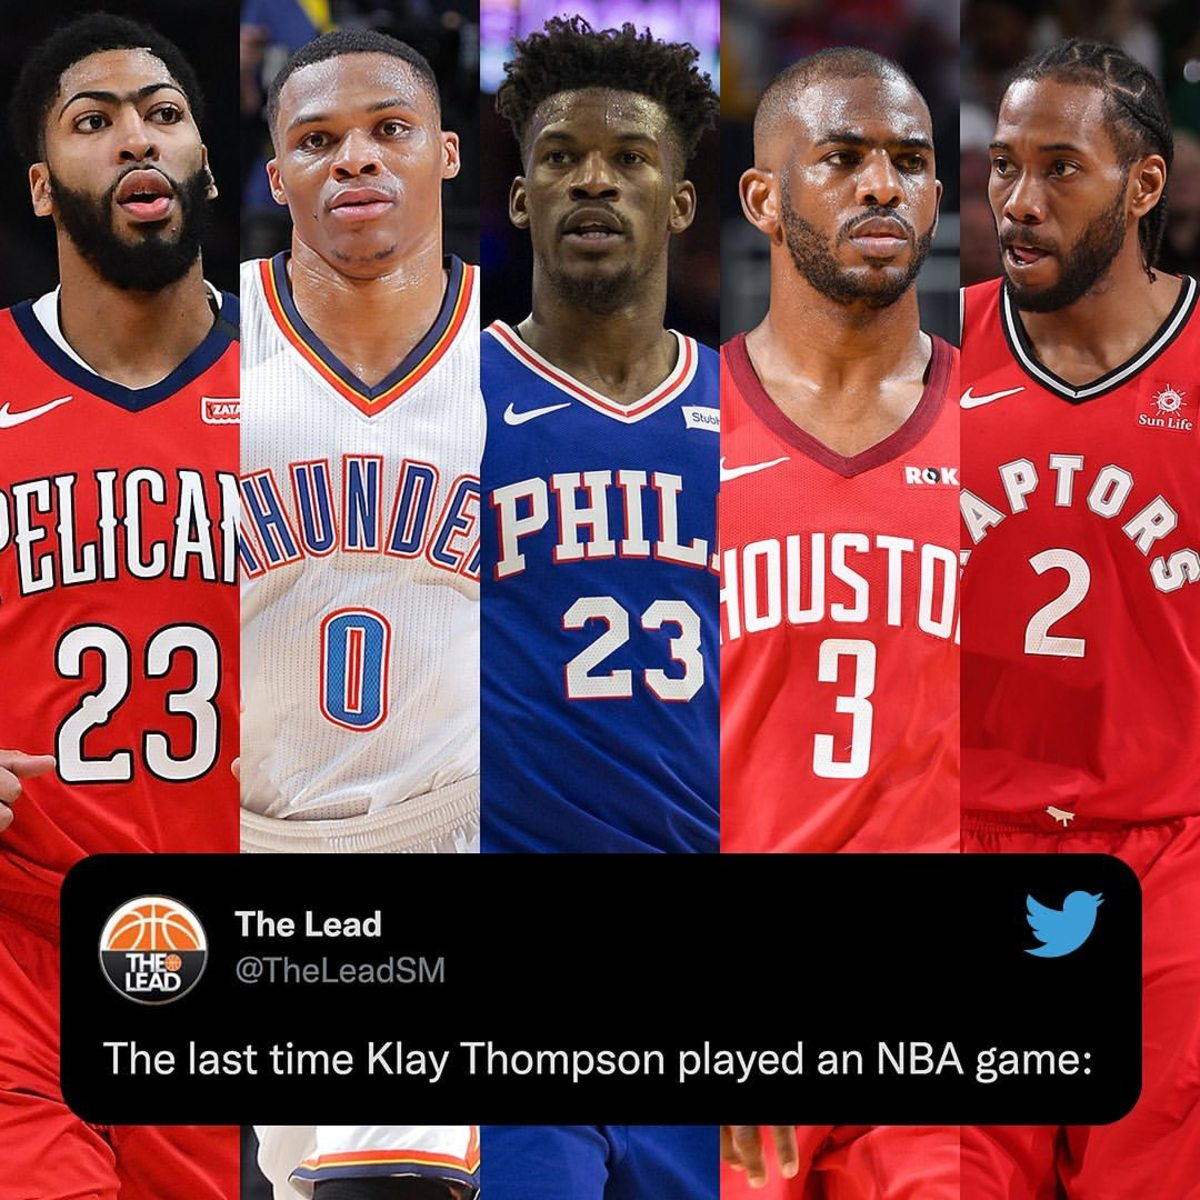 The Last Time Klay Thompson Played An NBA Game: Anthony Davis Was Still With Pelicans, Kawhi Leonard With Raptors, Russell Westbrook With Thunder